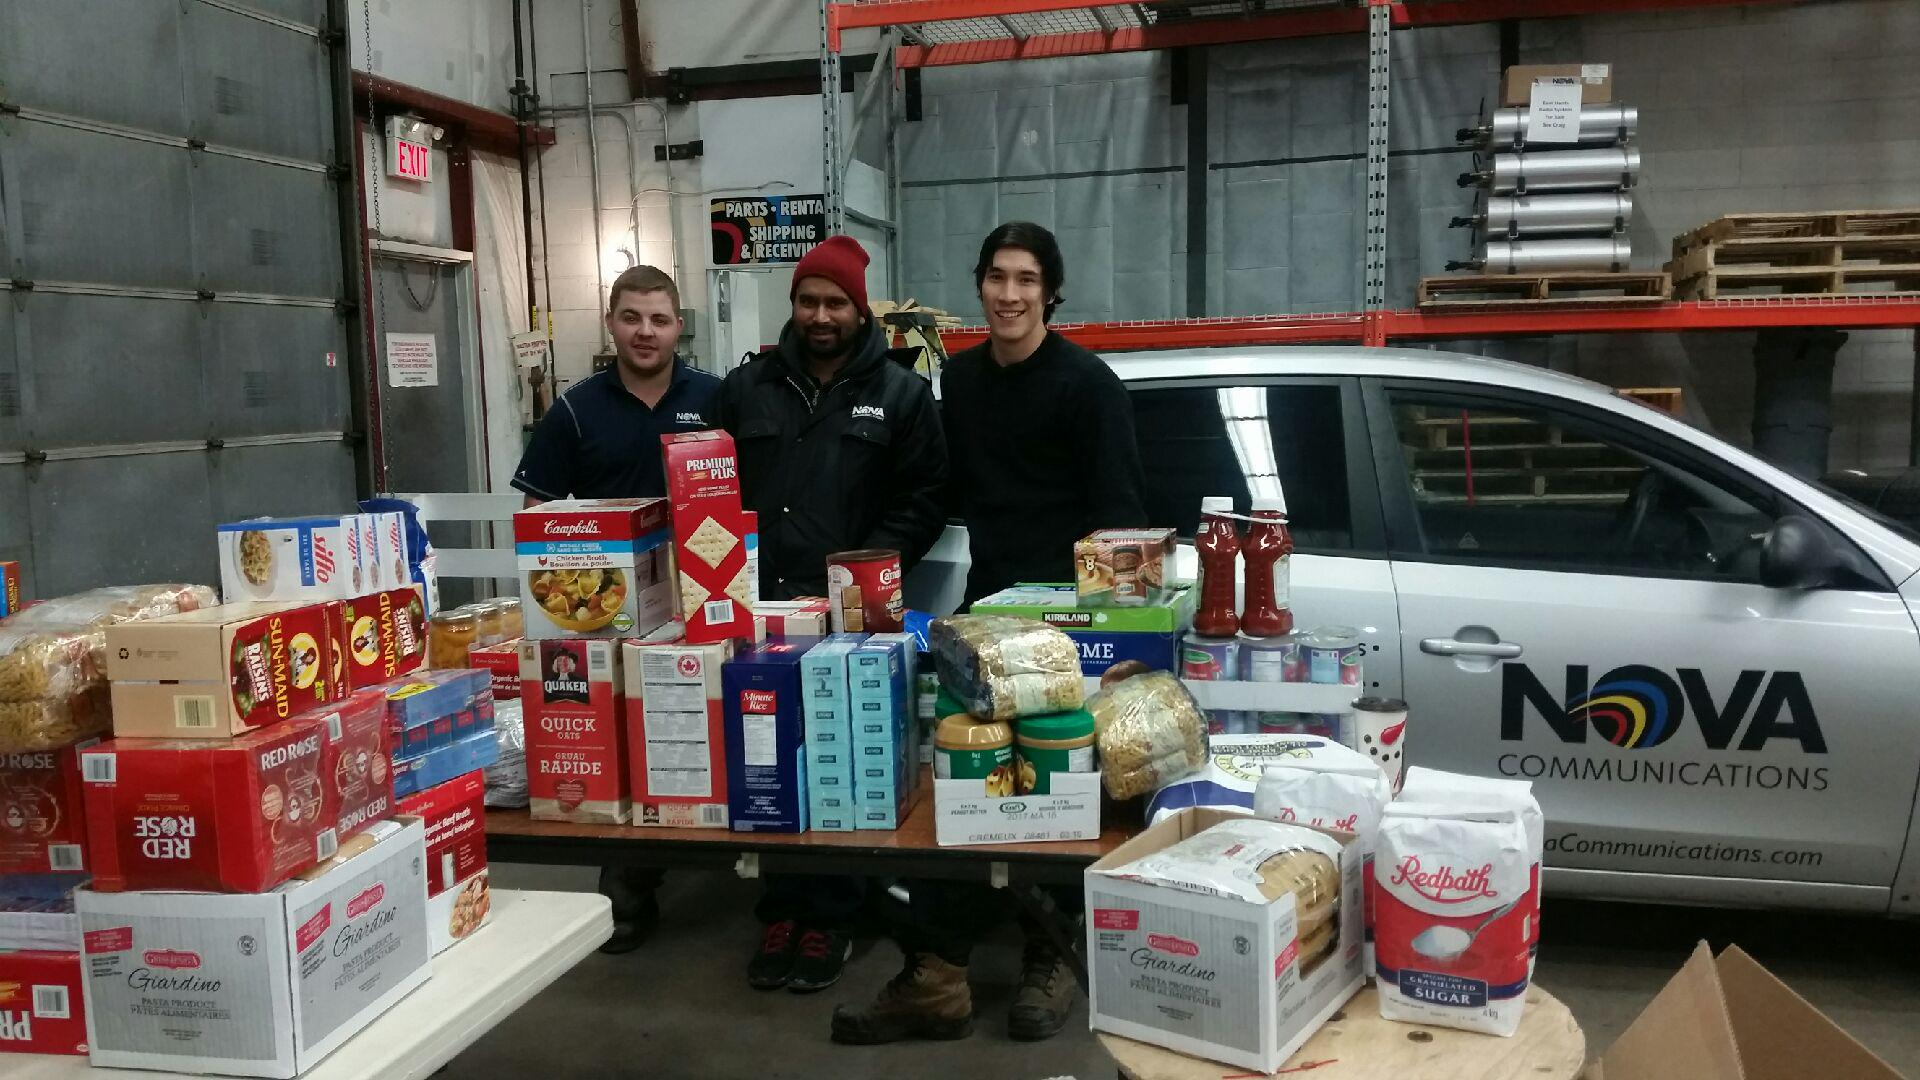 NOVA Communications team donating to food bank